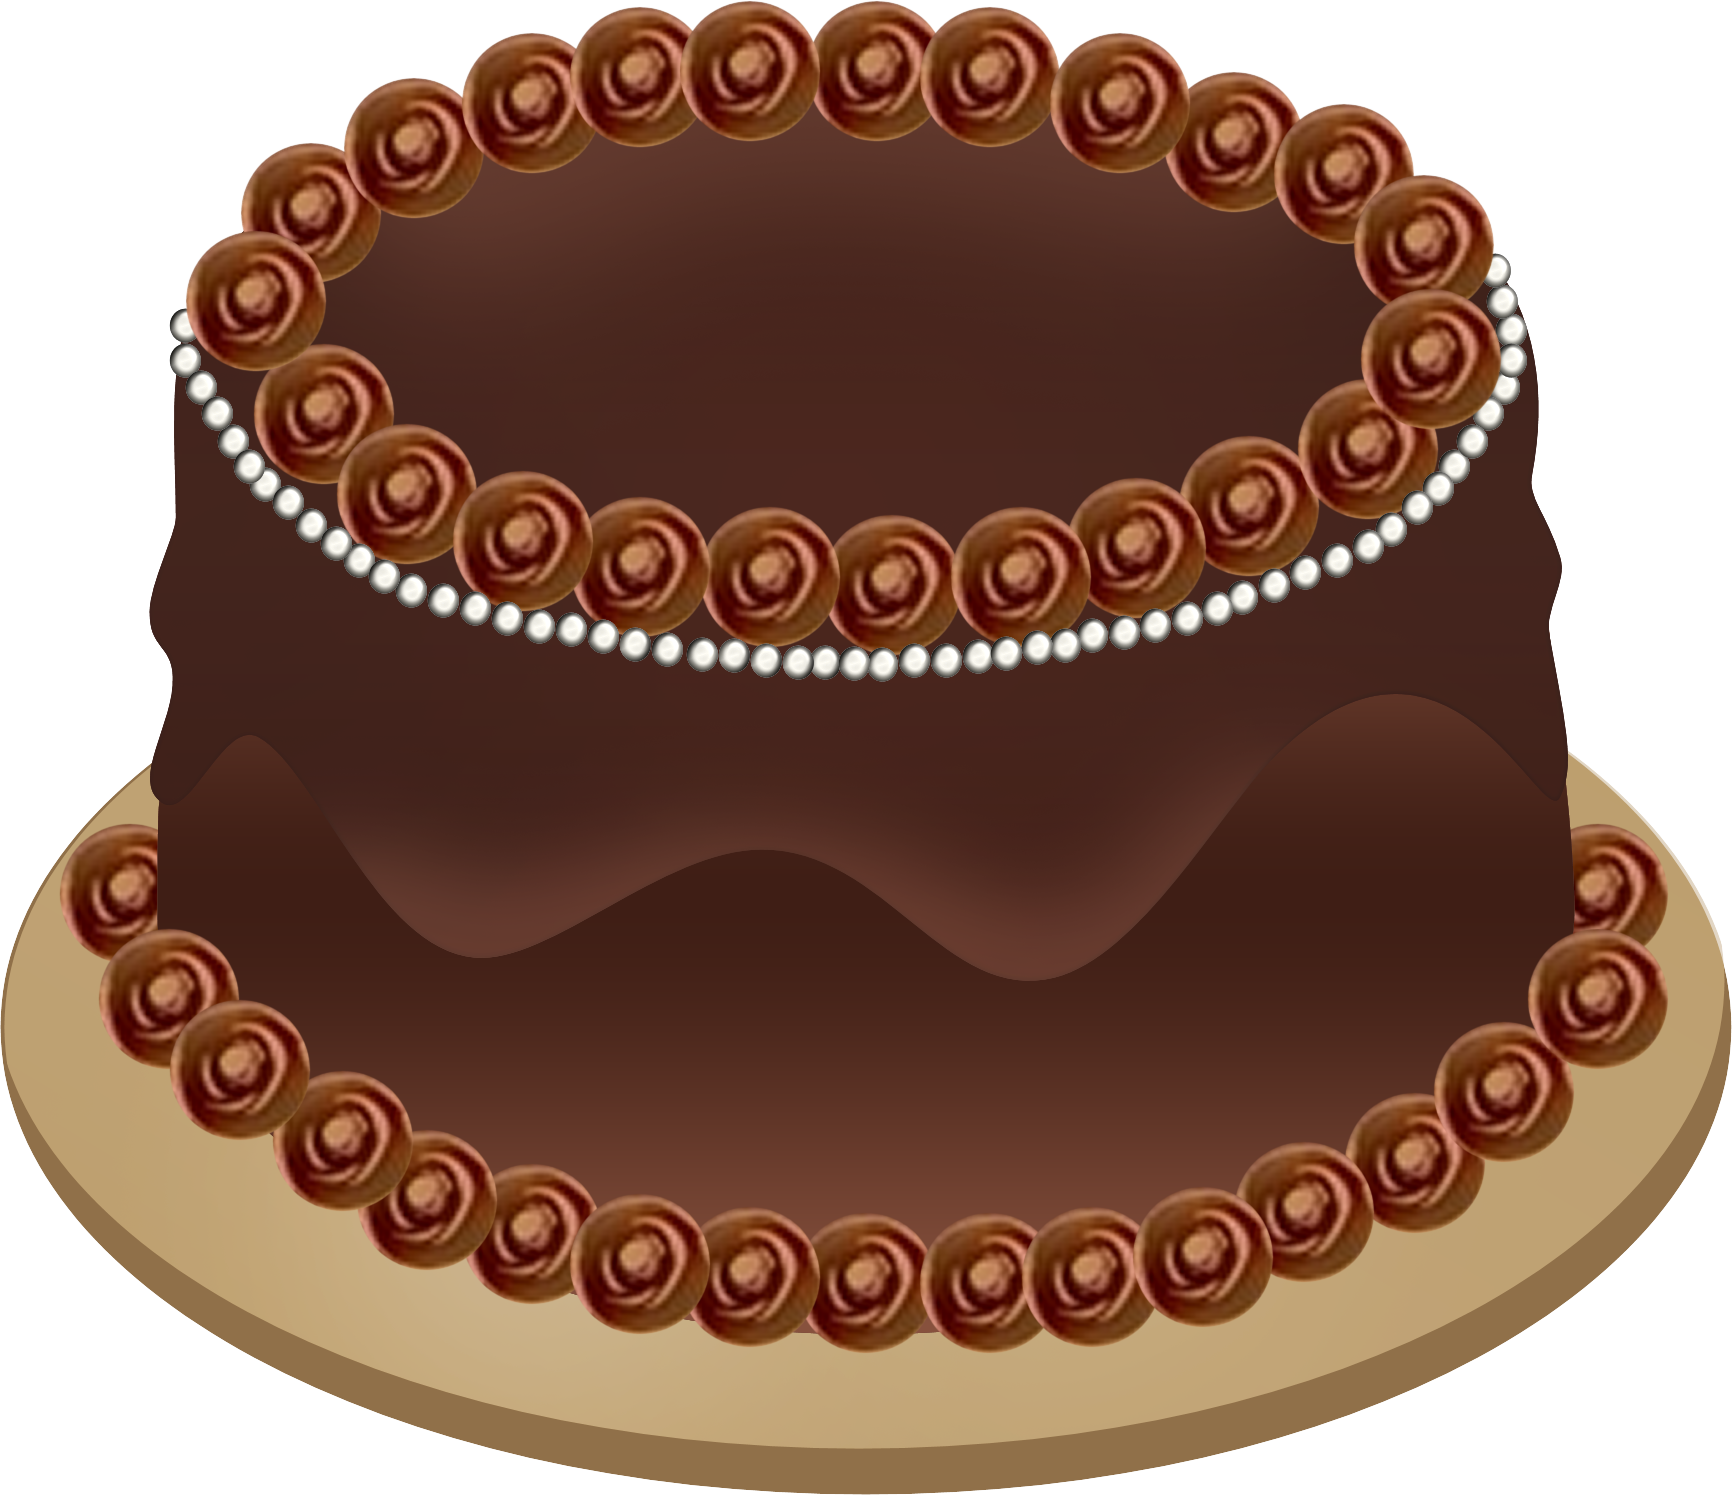 An Illustrated Birthday Cake Graphic  Click The Image To View And